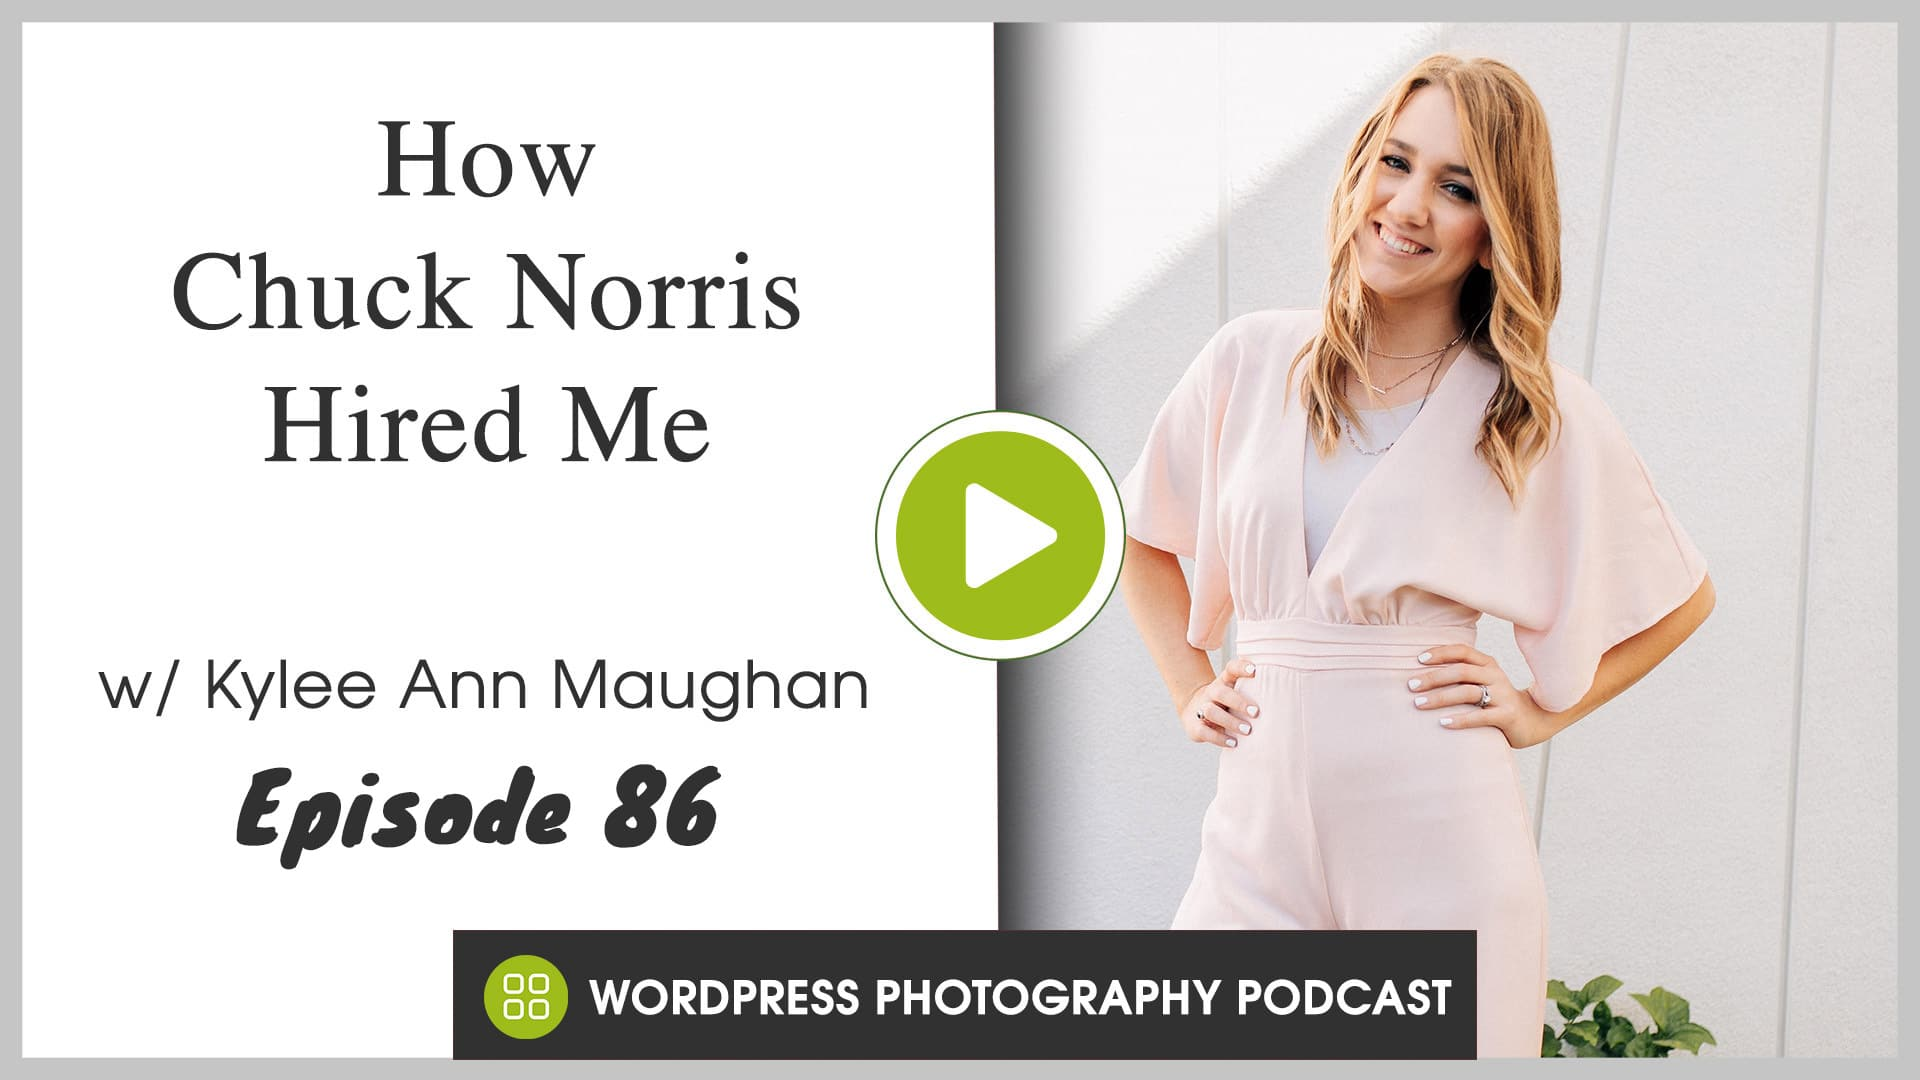 Episode 86 – How Chuck Norris Hired Me with Kylee Ann Maughan